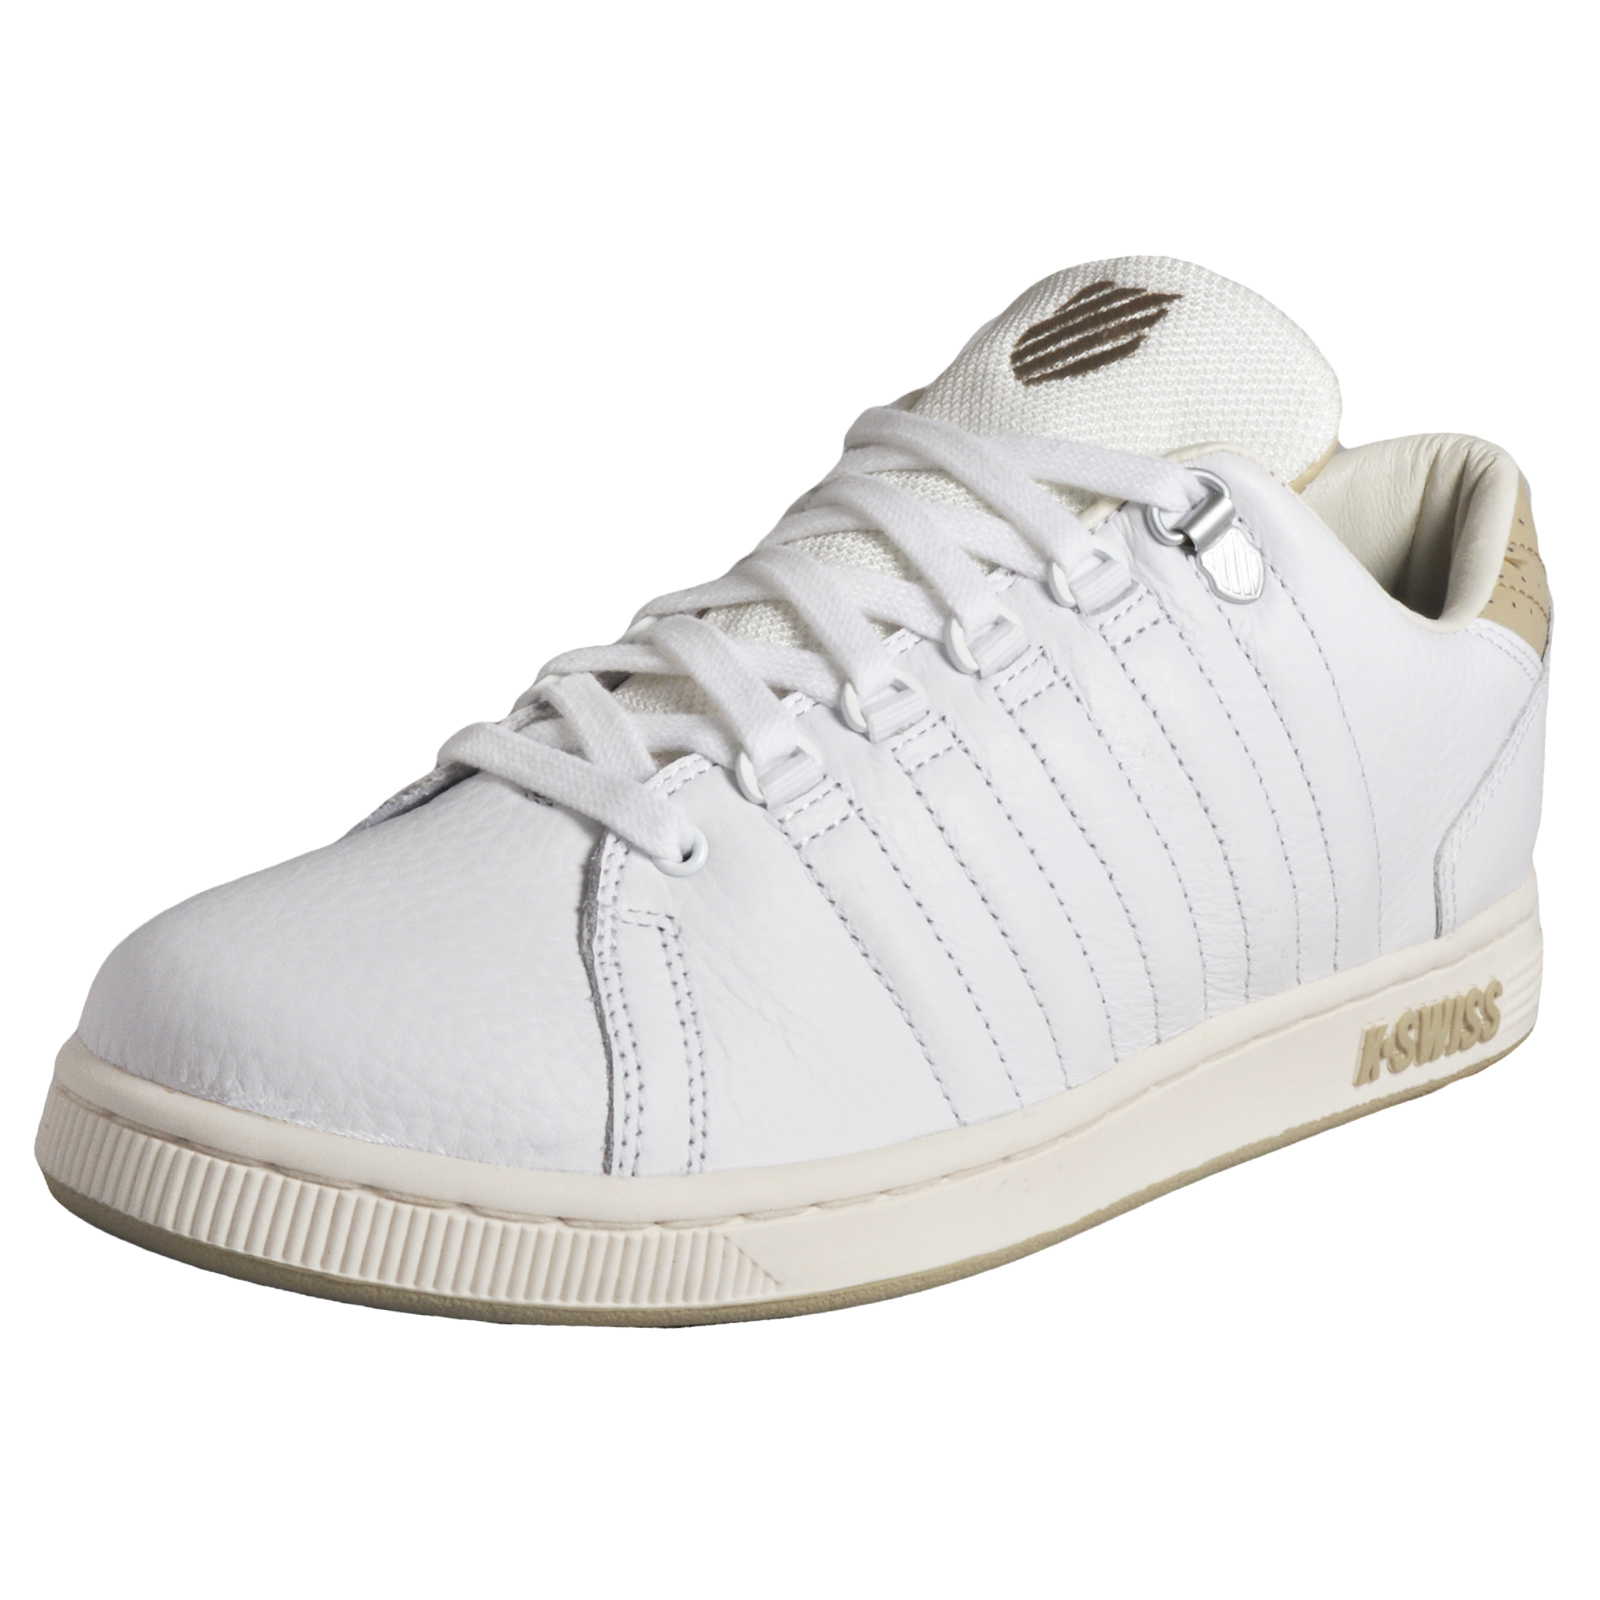 53fb0632da1 Details about K Swiss Lozan III Vintage Tongue Twister Men's Classic Casual  Leather Trainers W